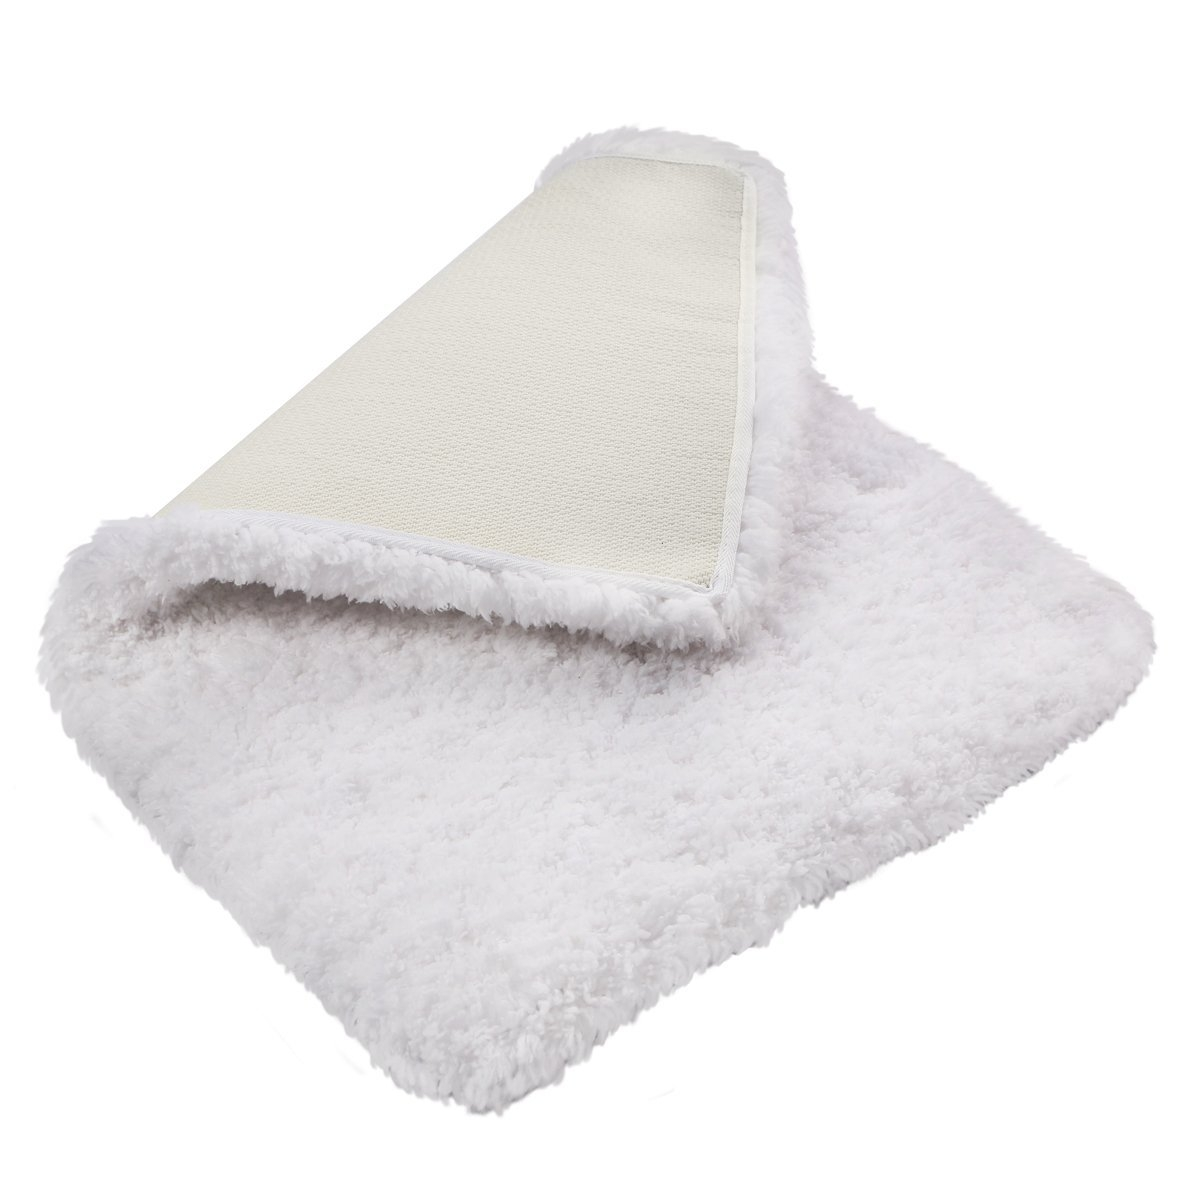 Luxury Black And White Bath Mats